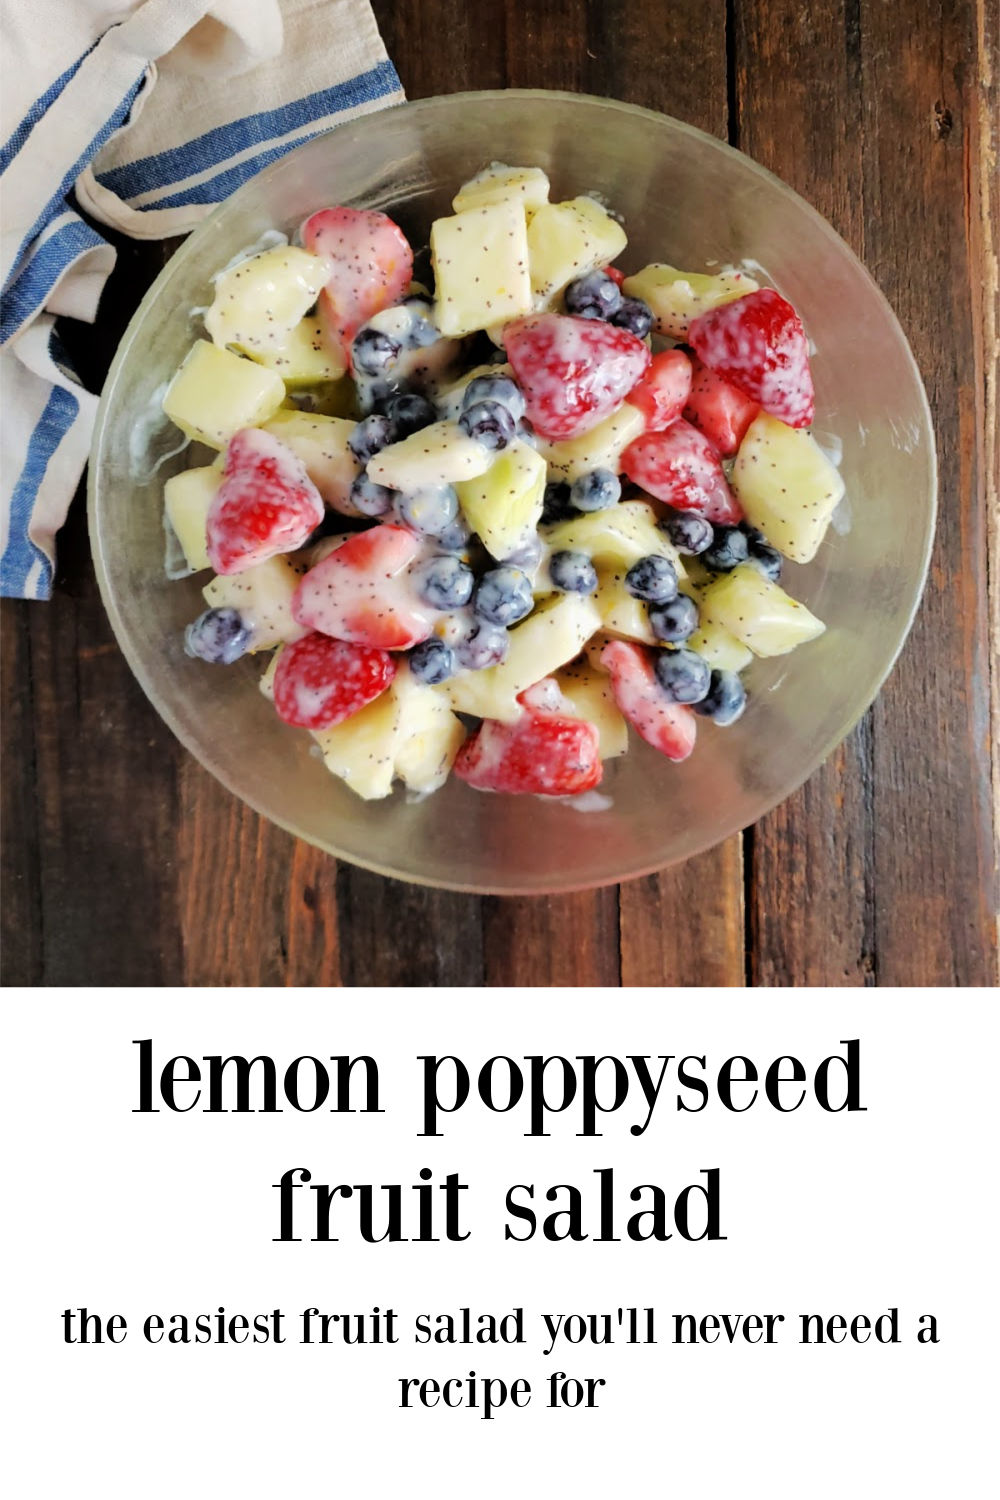 Lemon Poppyseed - The Easiest Fruit Salad You'll Never Need A Recipe For. Seriously easy, quick to make and so delicious! It's embarrassingly easy! #LemonPoppyseedFruitSalad #FruitSalad